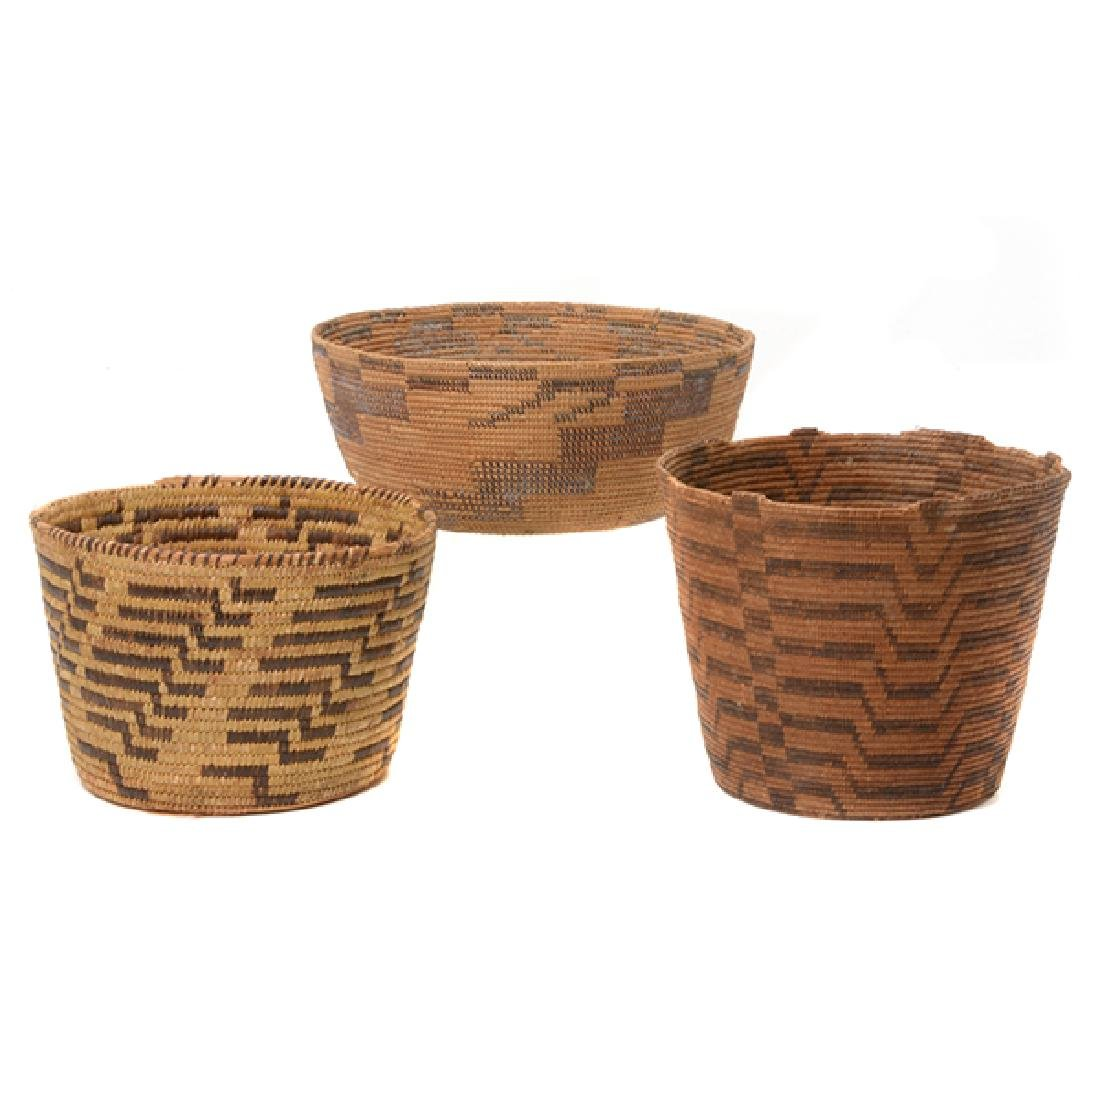 Three Native American Hand Woven Baskets